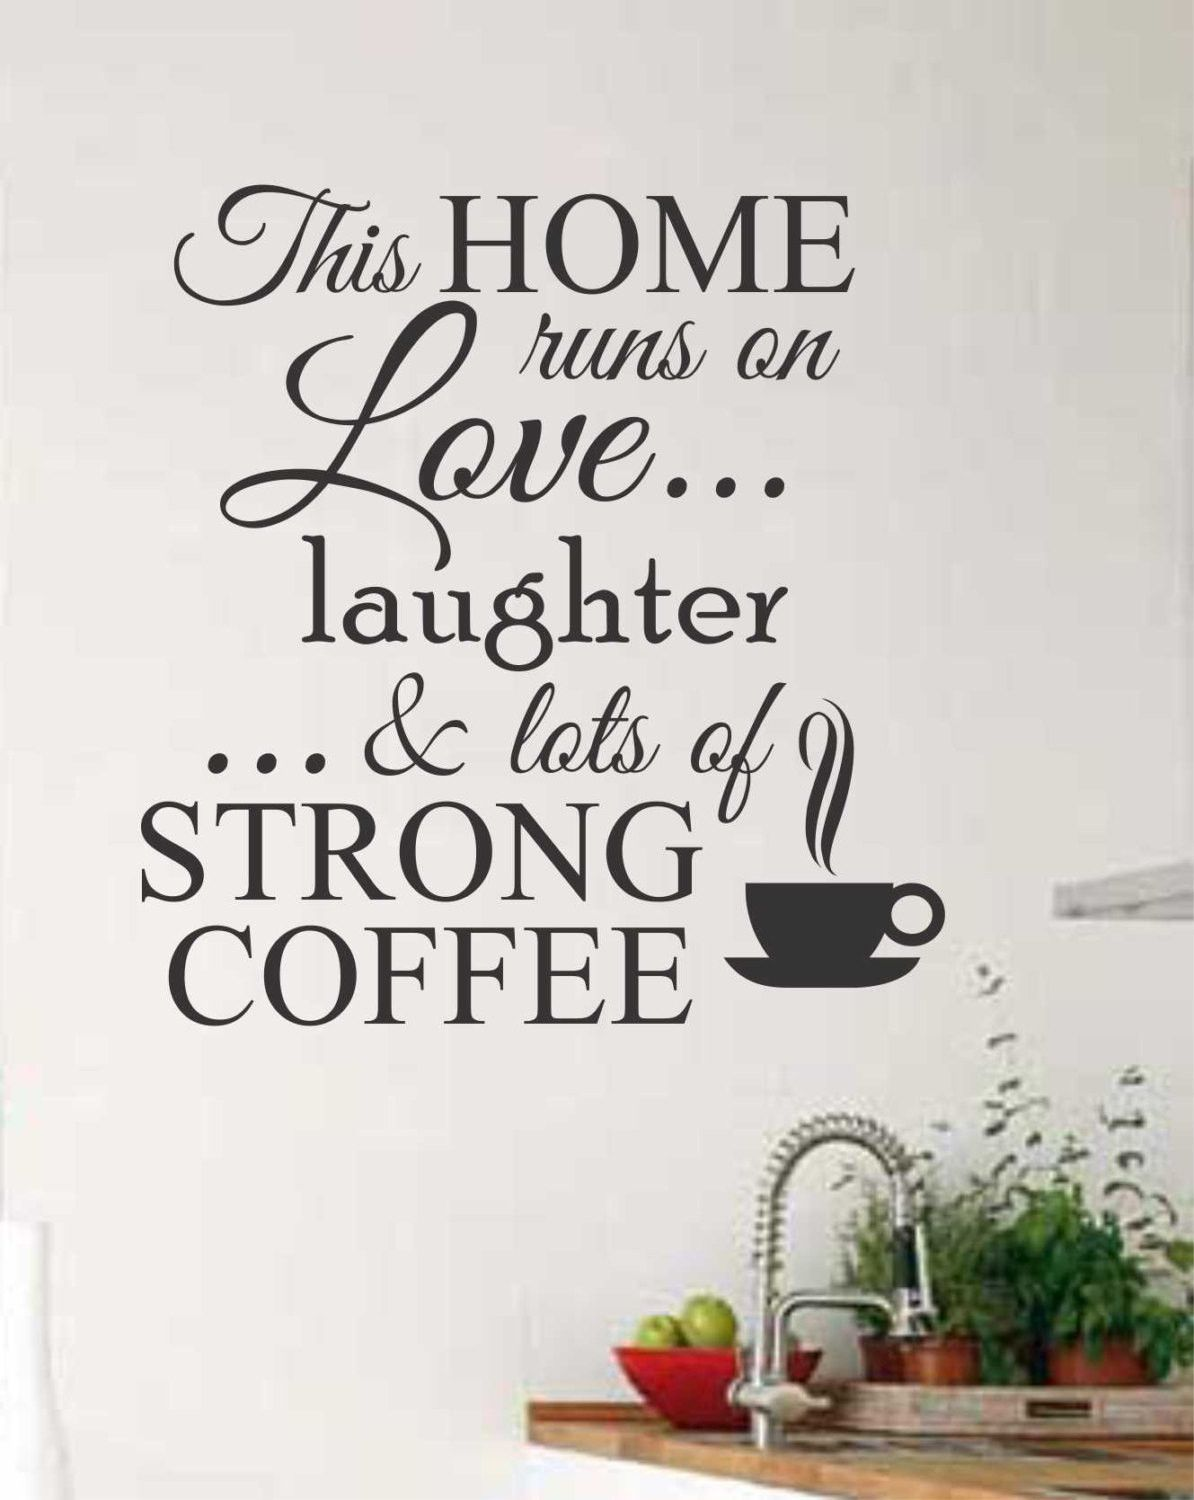 Home Runs On Strong Coffee | Kitchen Decal | Vinyl Lettering ...